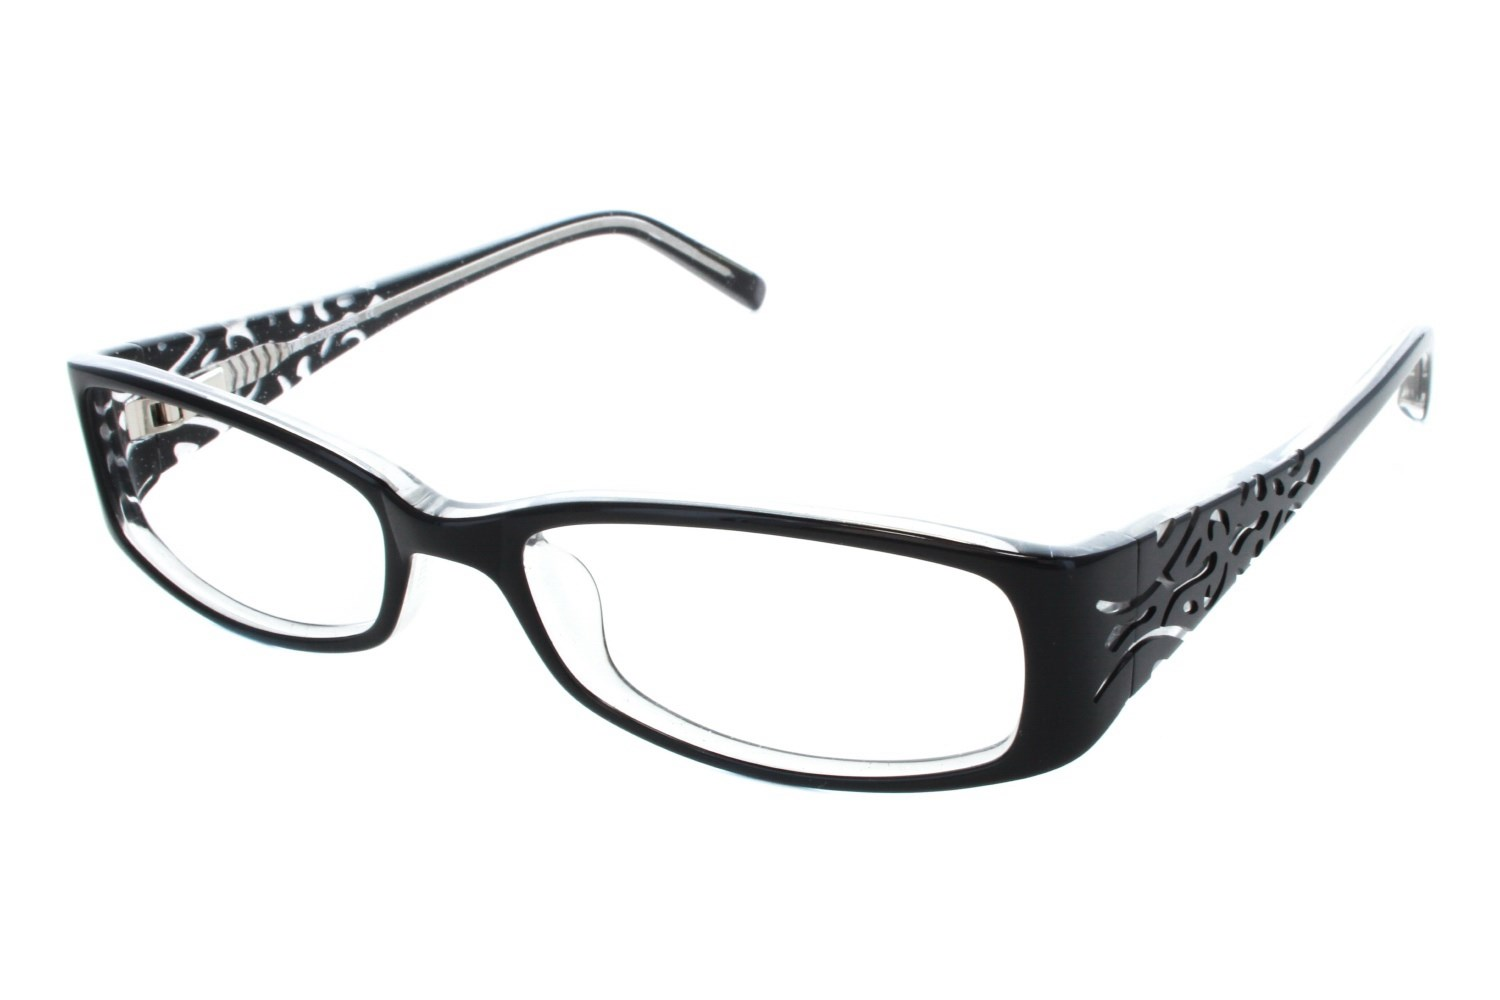 Eyeglass Frame Lookup : Eyeglasses Frames For Men - Search